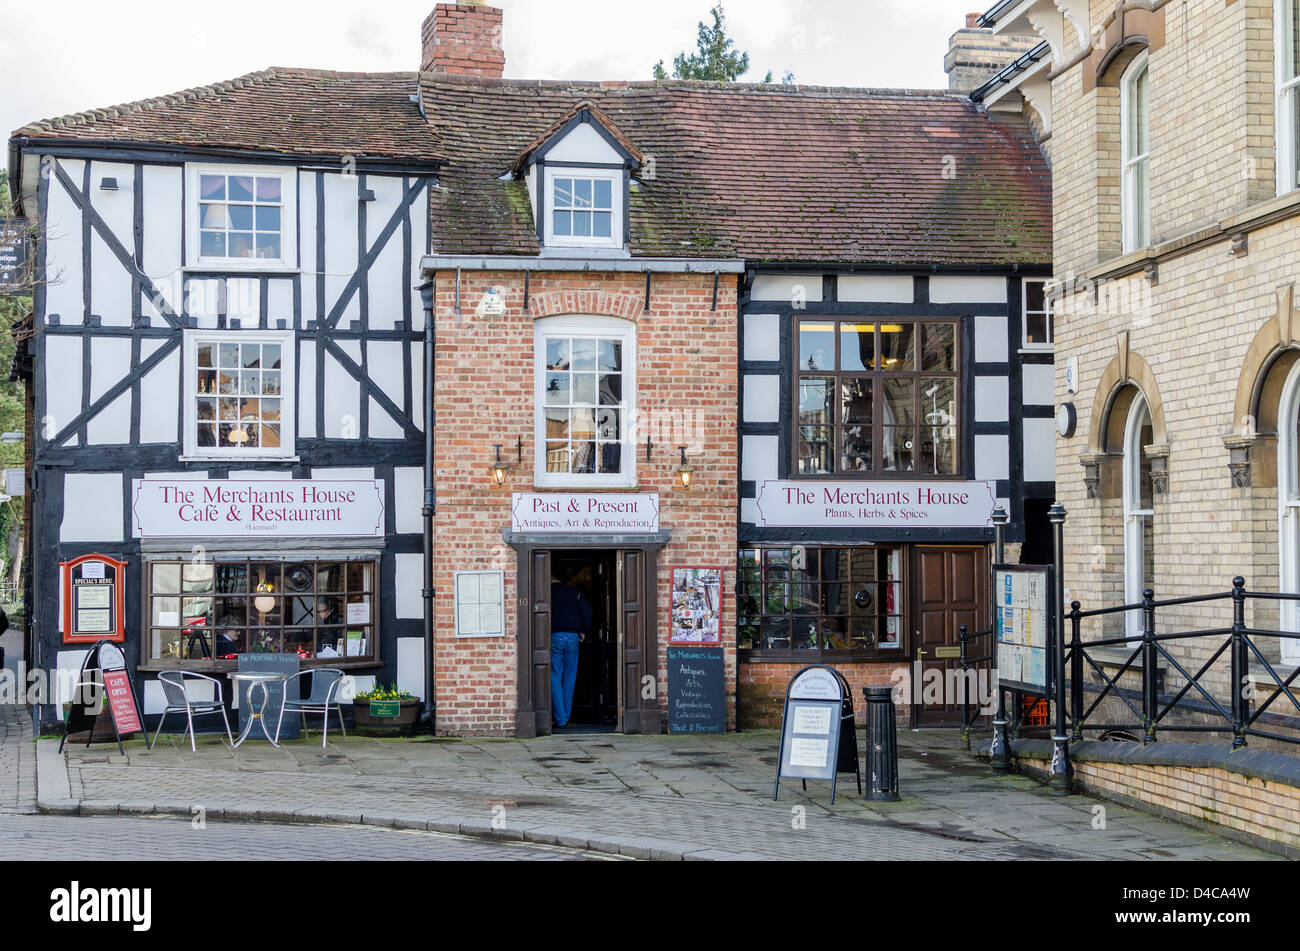 The Merchants House Cafe and Restaurant in Leominster, Herefordshire - Stock Image